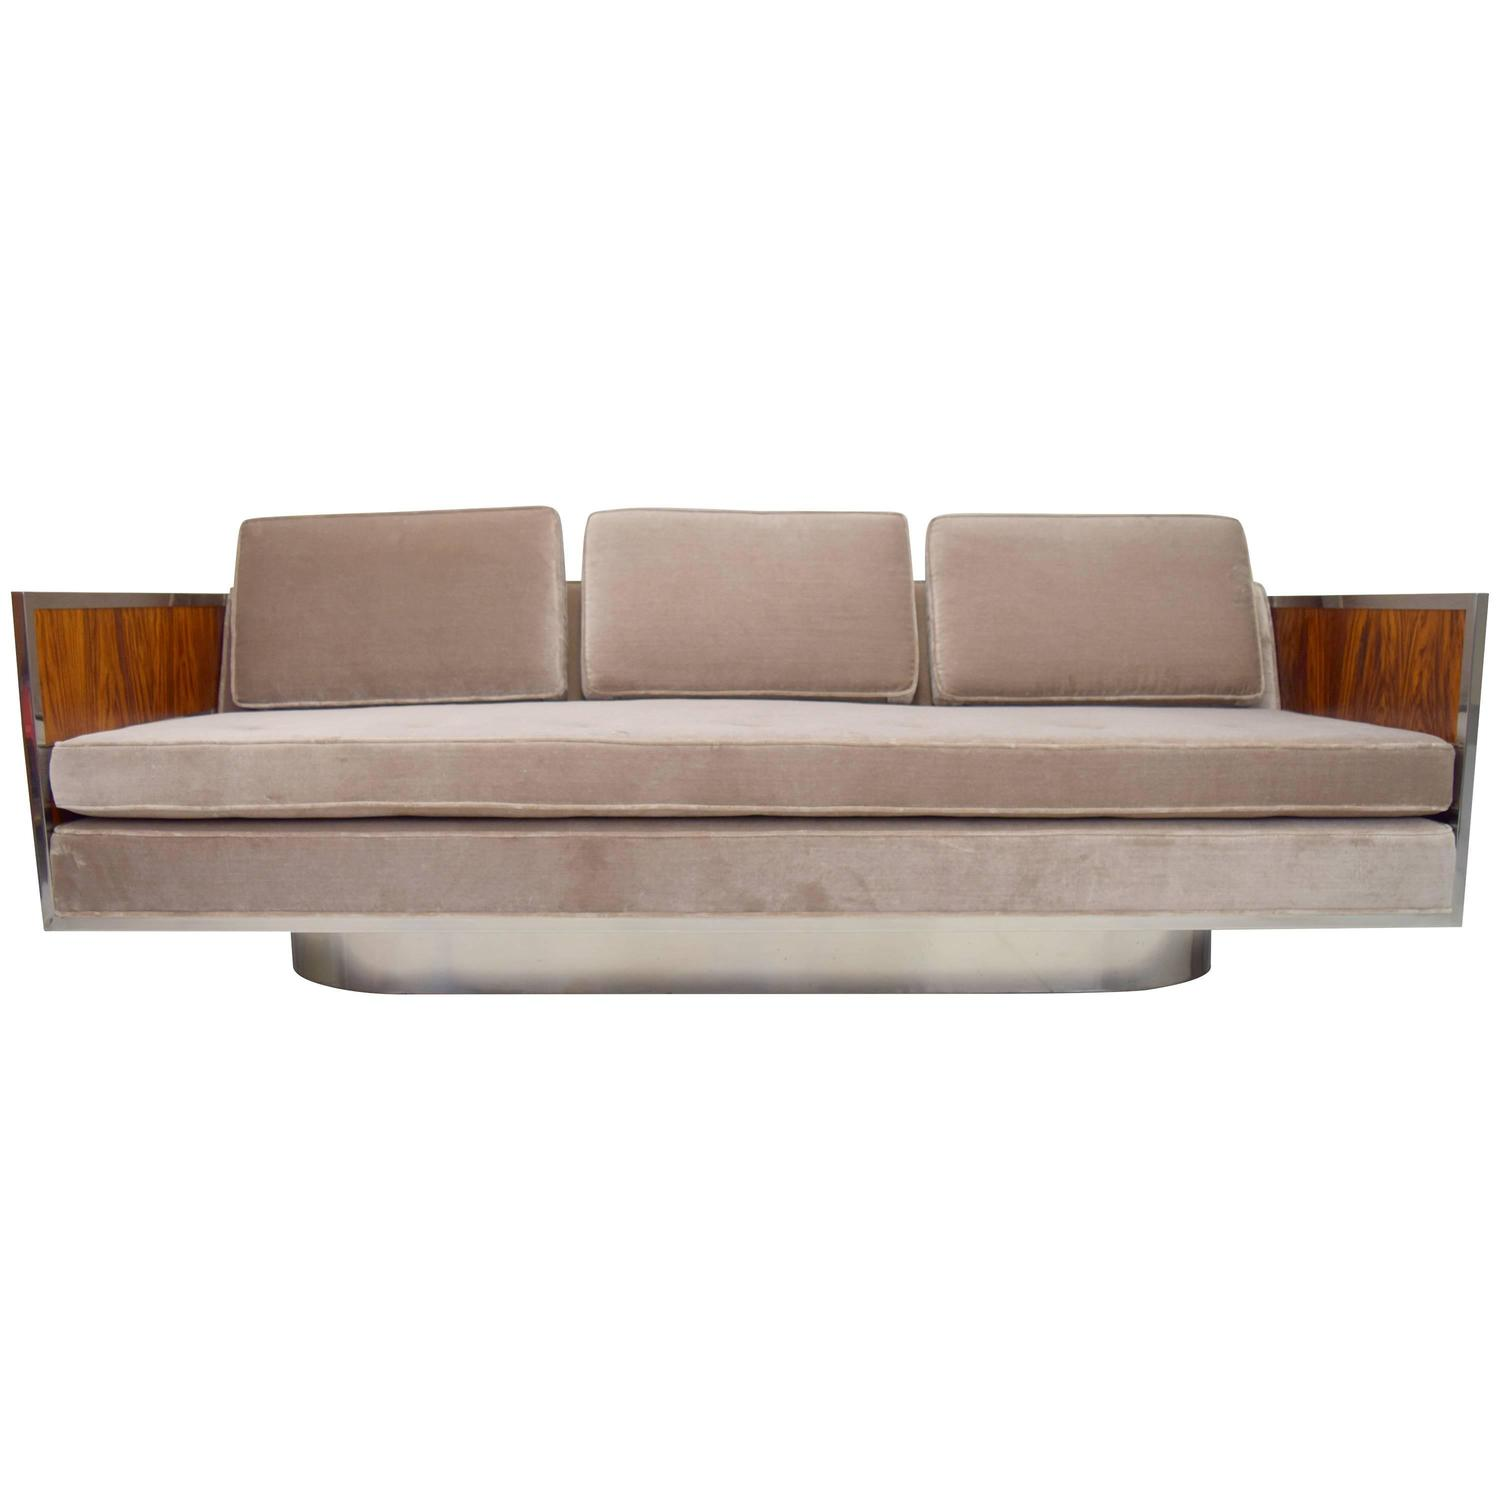 Rosewood And Chrome Case Sofa With Oval Base Attributed To Milo Baughman For Sale At 1stdibs